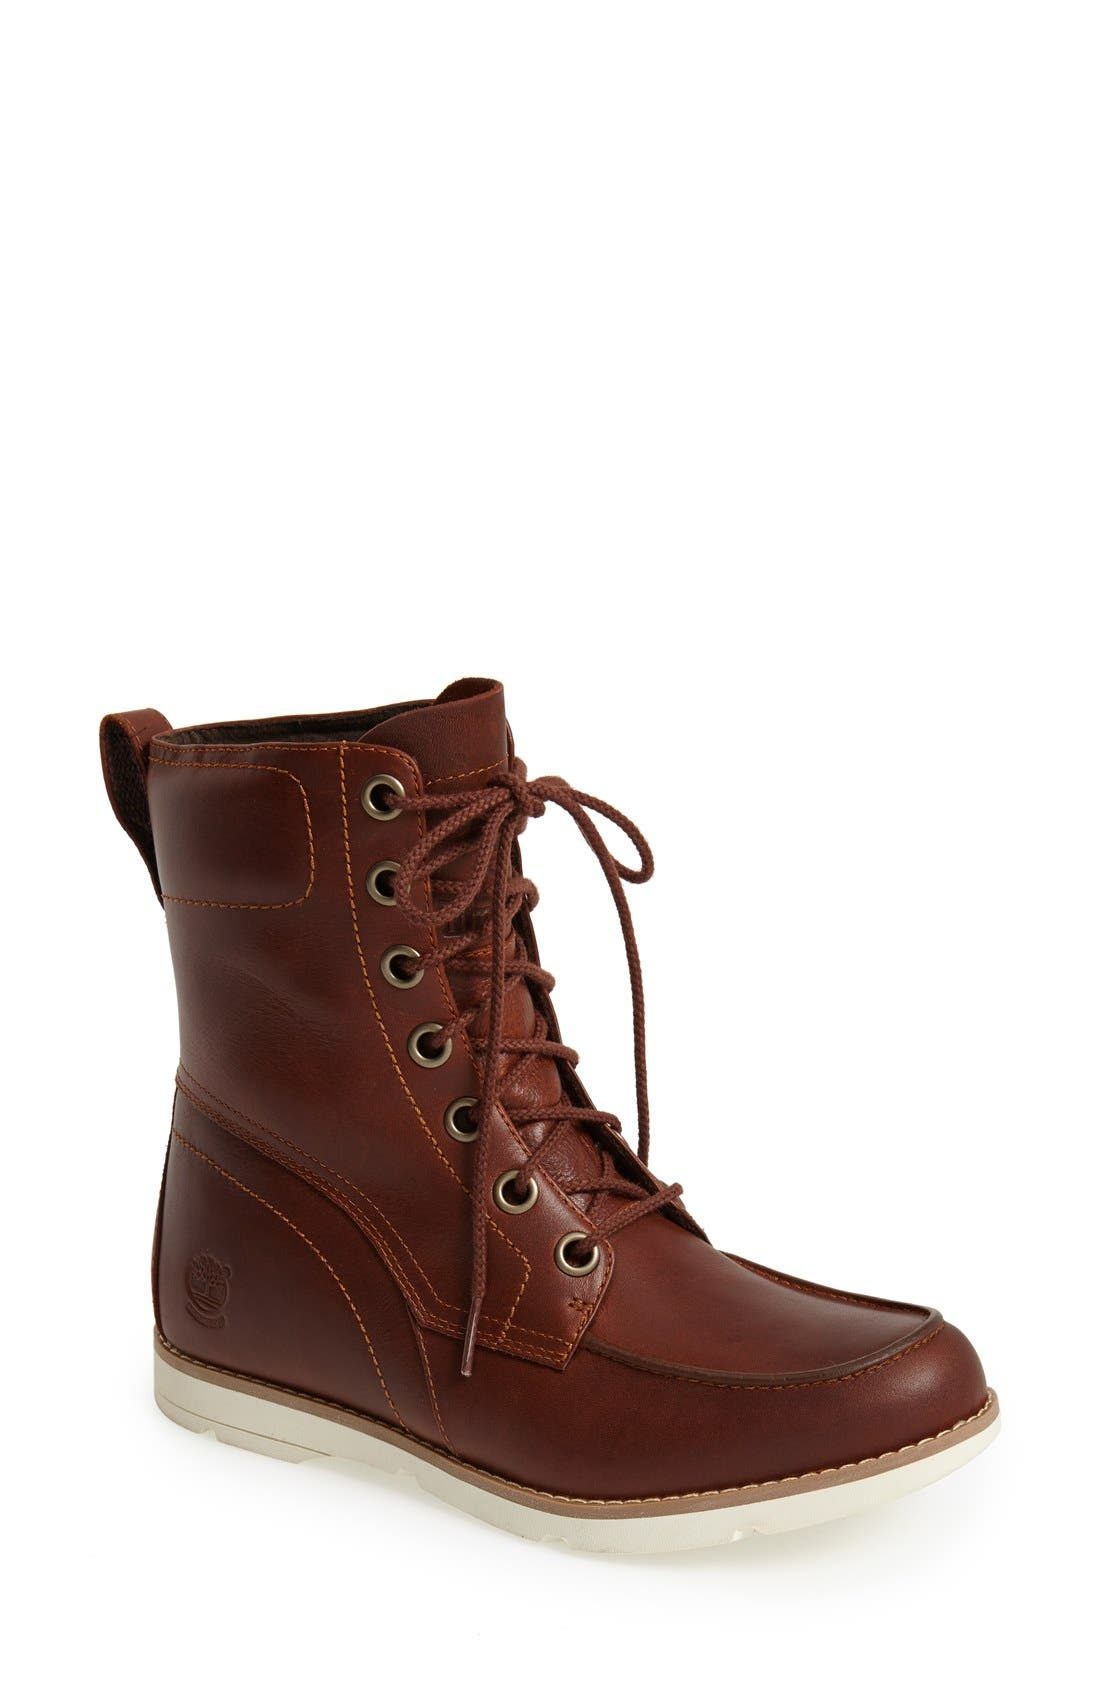 Alternate Image 1 Selected - Timberland Earthkeepers® 'Mosely' Waterproof Leather Boot (Women)